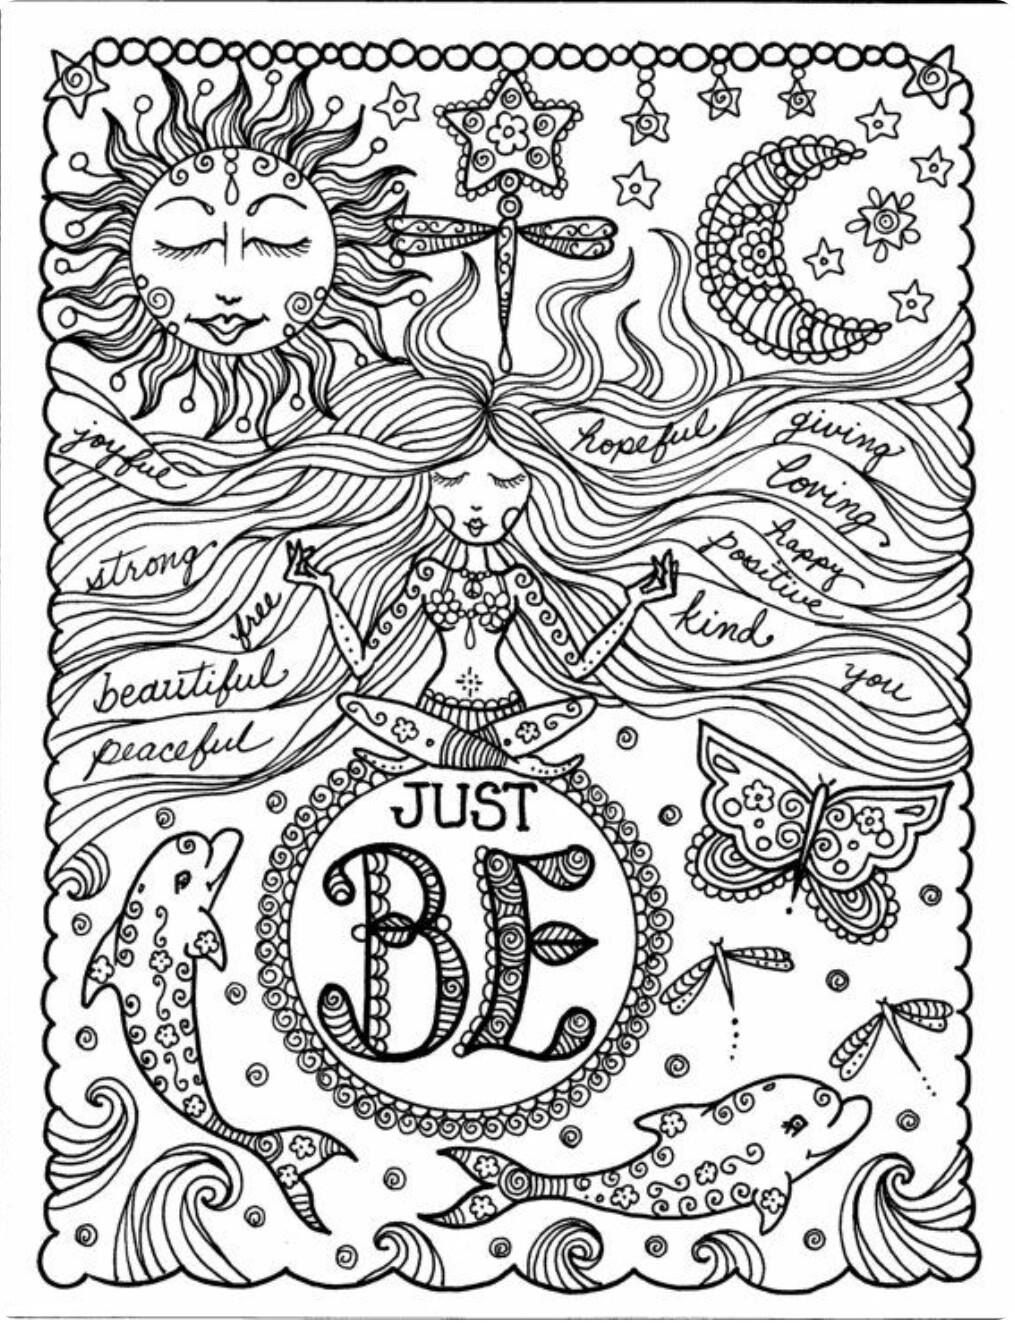 Pin By Maria Adkinson On Coloring Pages Coloring Books Coloring